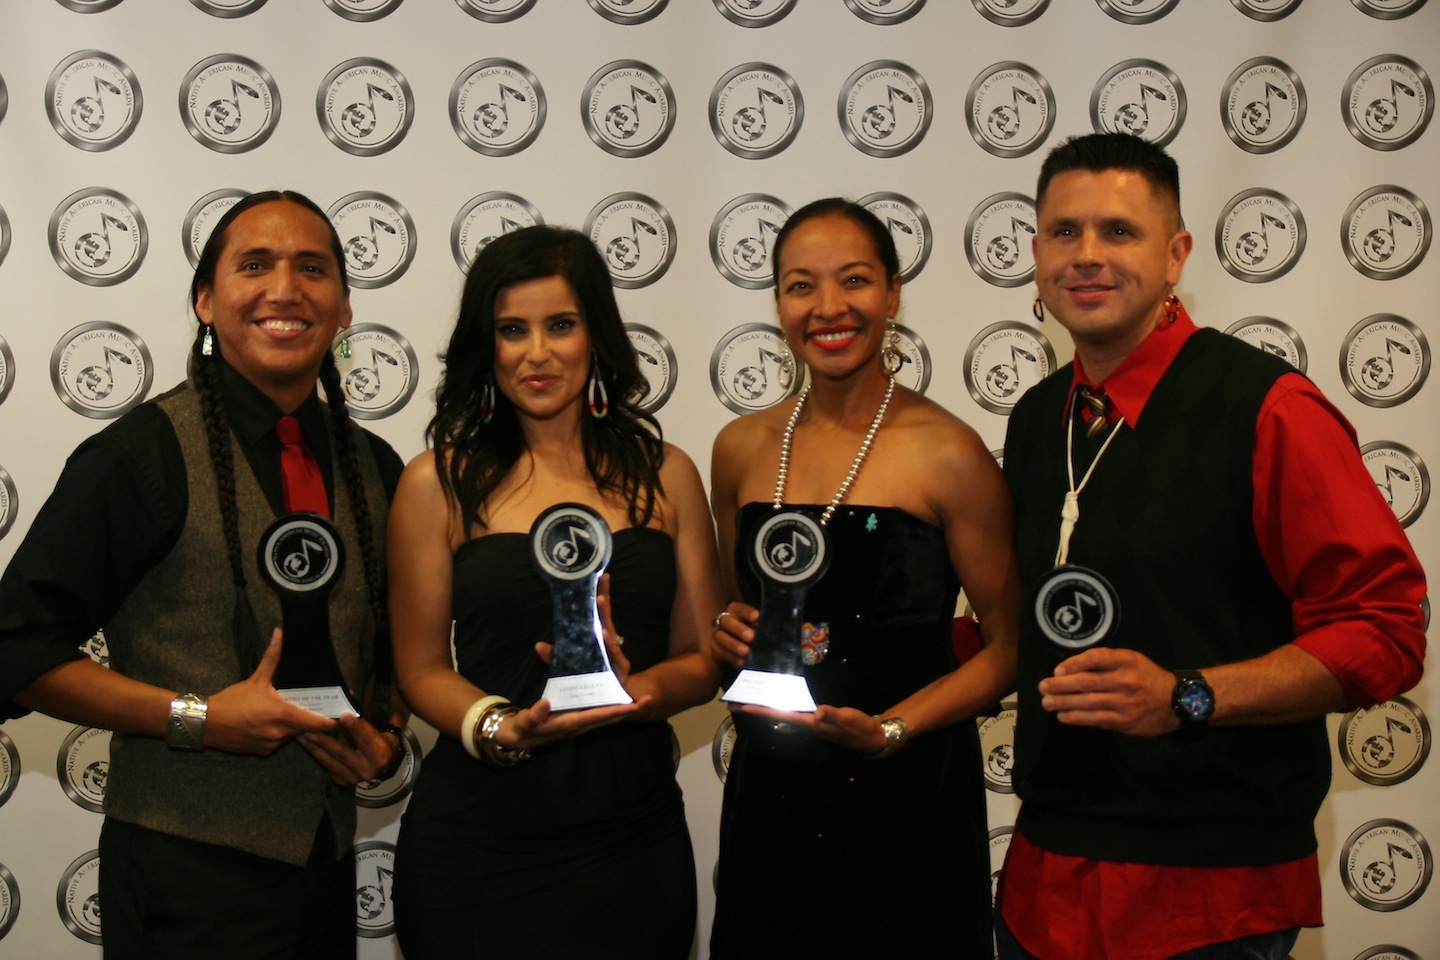 Living Legend Award winner Nelly Furtado, second from left, is shown with Tony Duncan (Performer of the Year), Radmilla Cody (Record of the Year) and Wayne Silas Jr. (Best Male Artist).